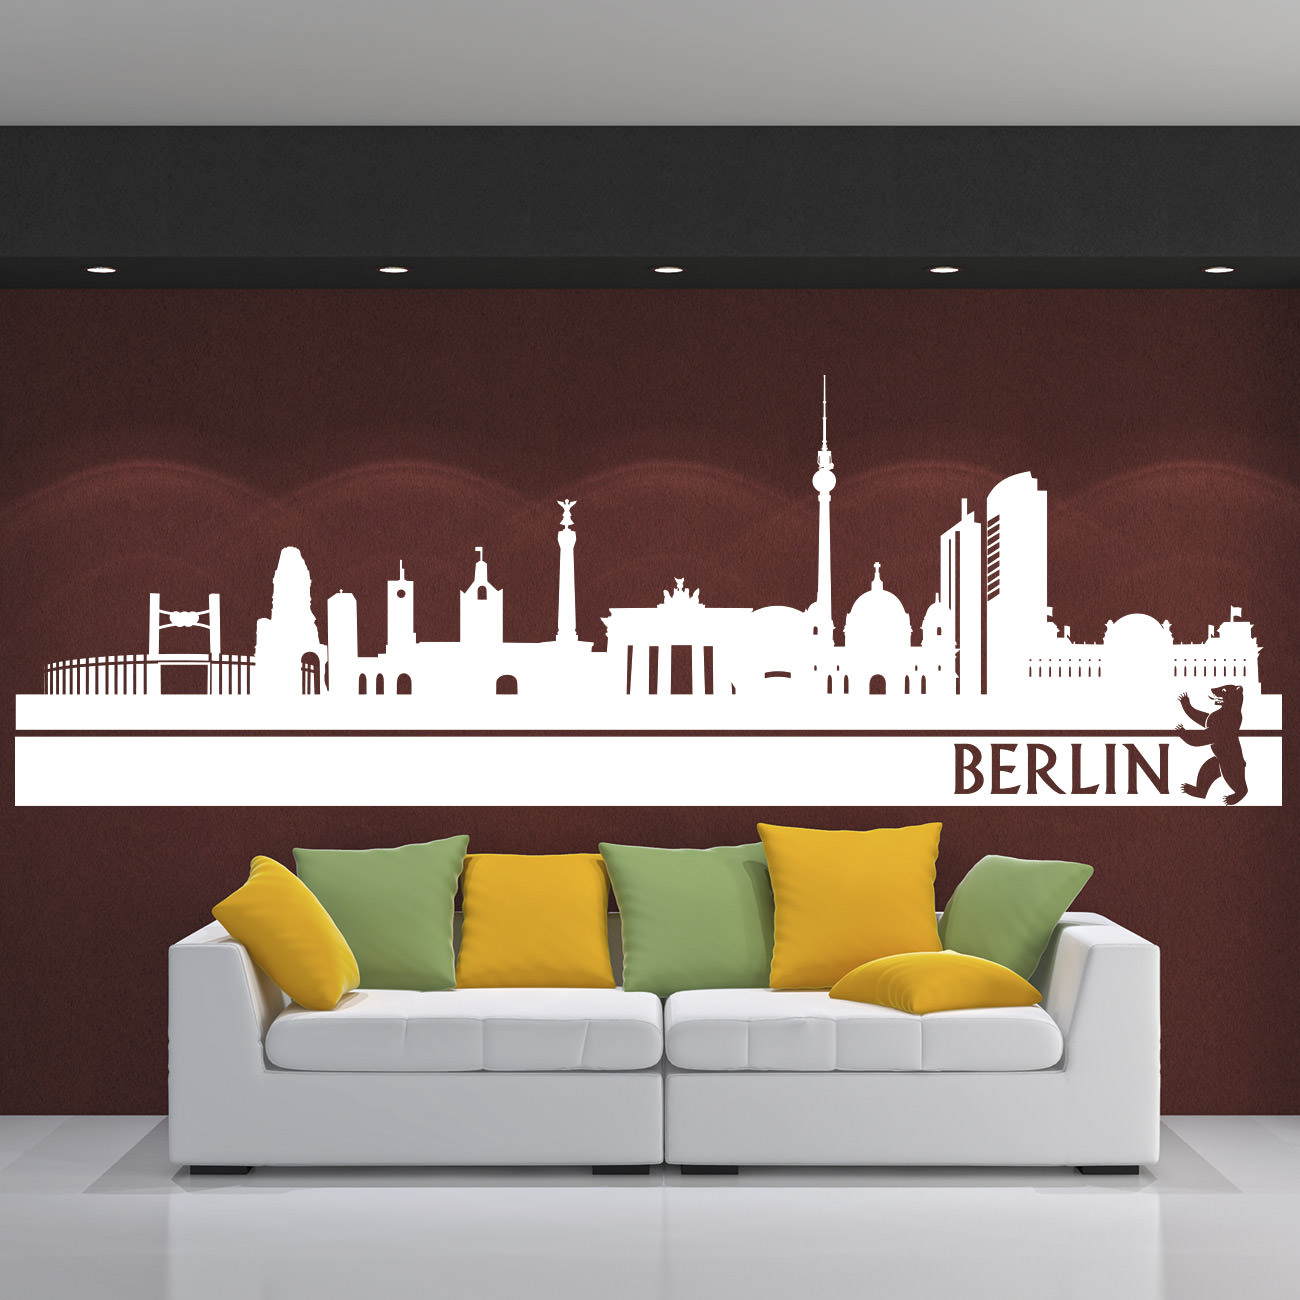 skyline wandtattoo berlin sunnywall online shop. Black Bedroom Furniture Sets. Home Design Ideas